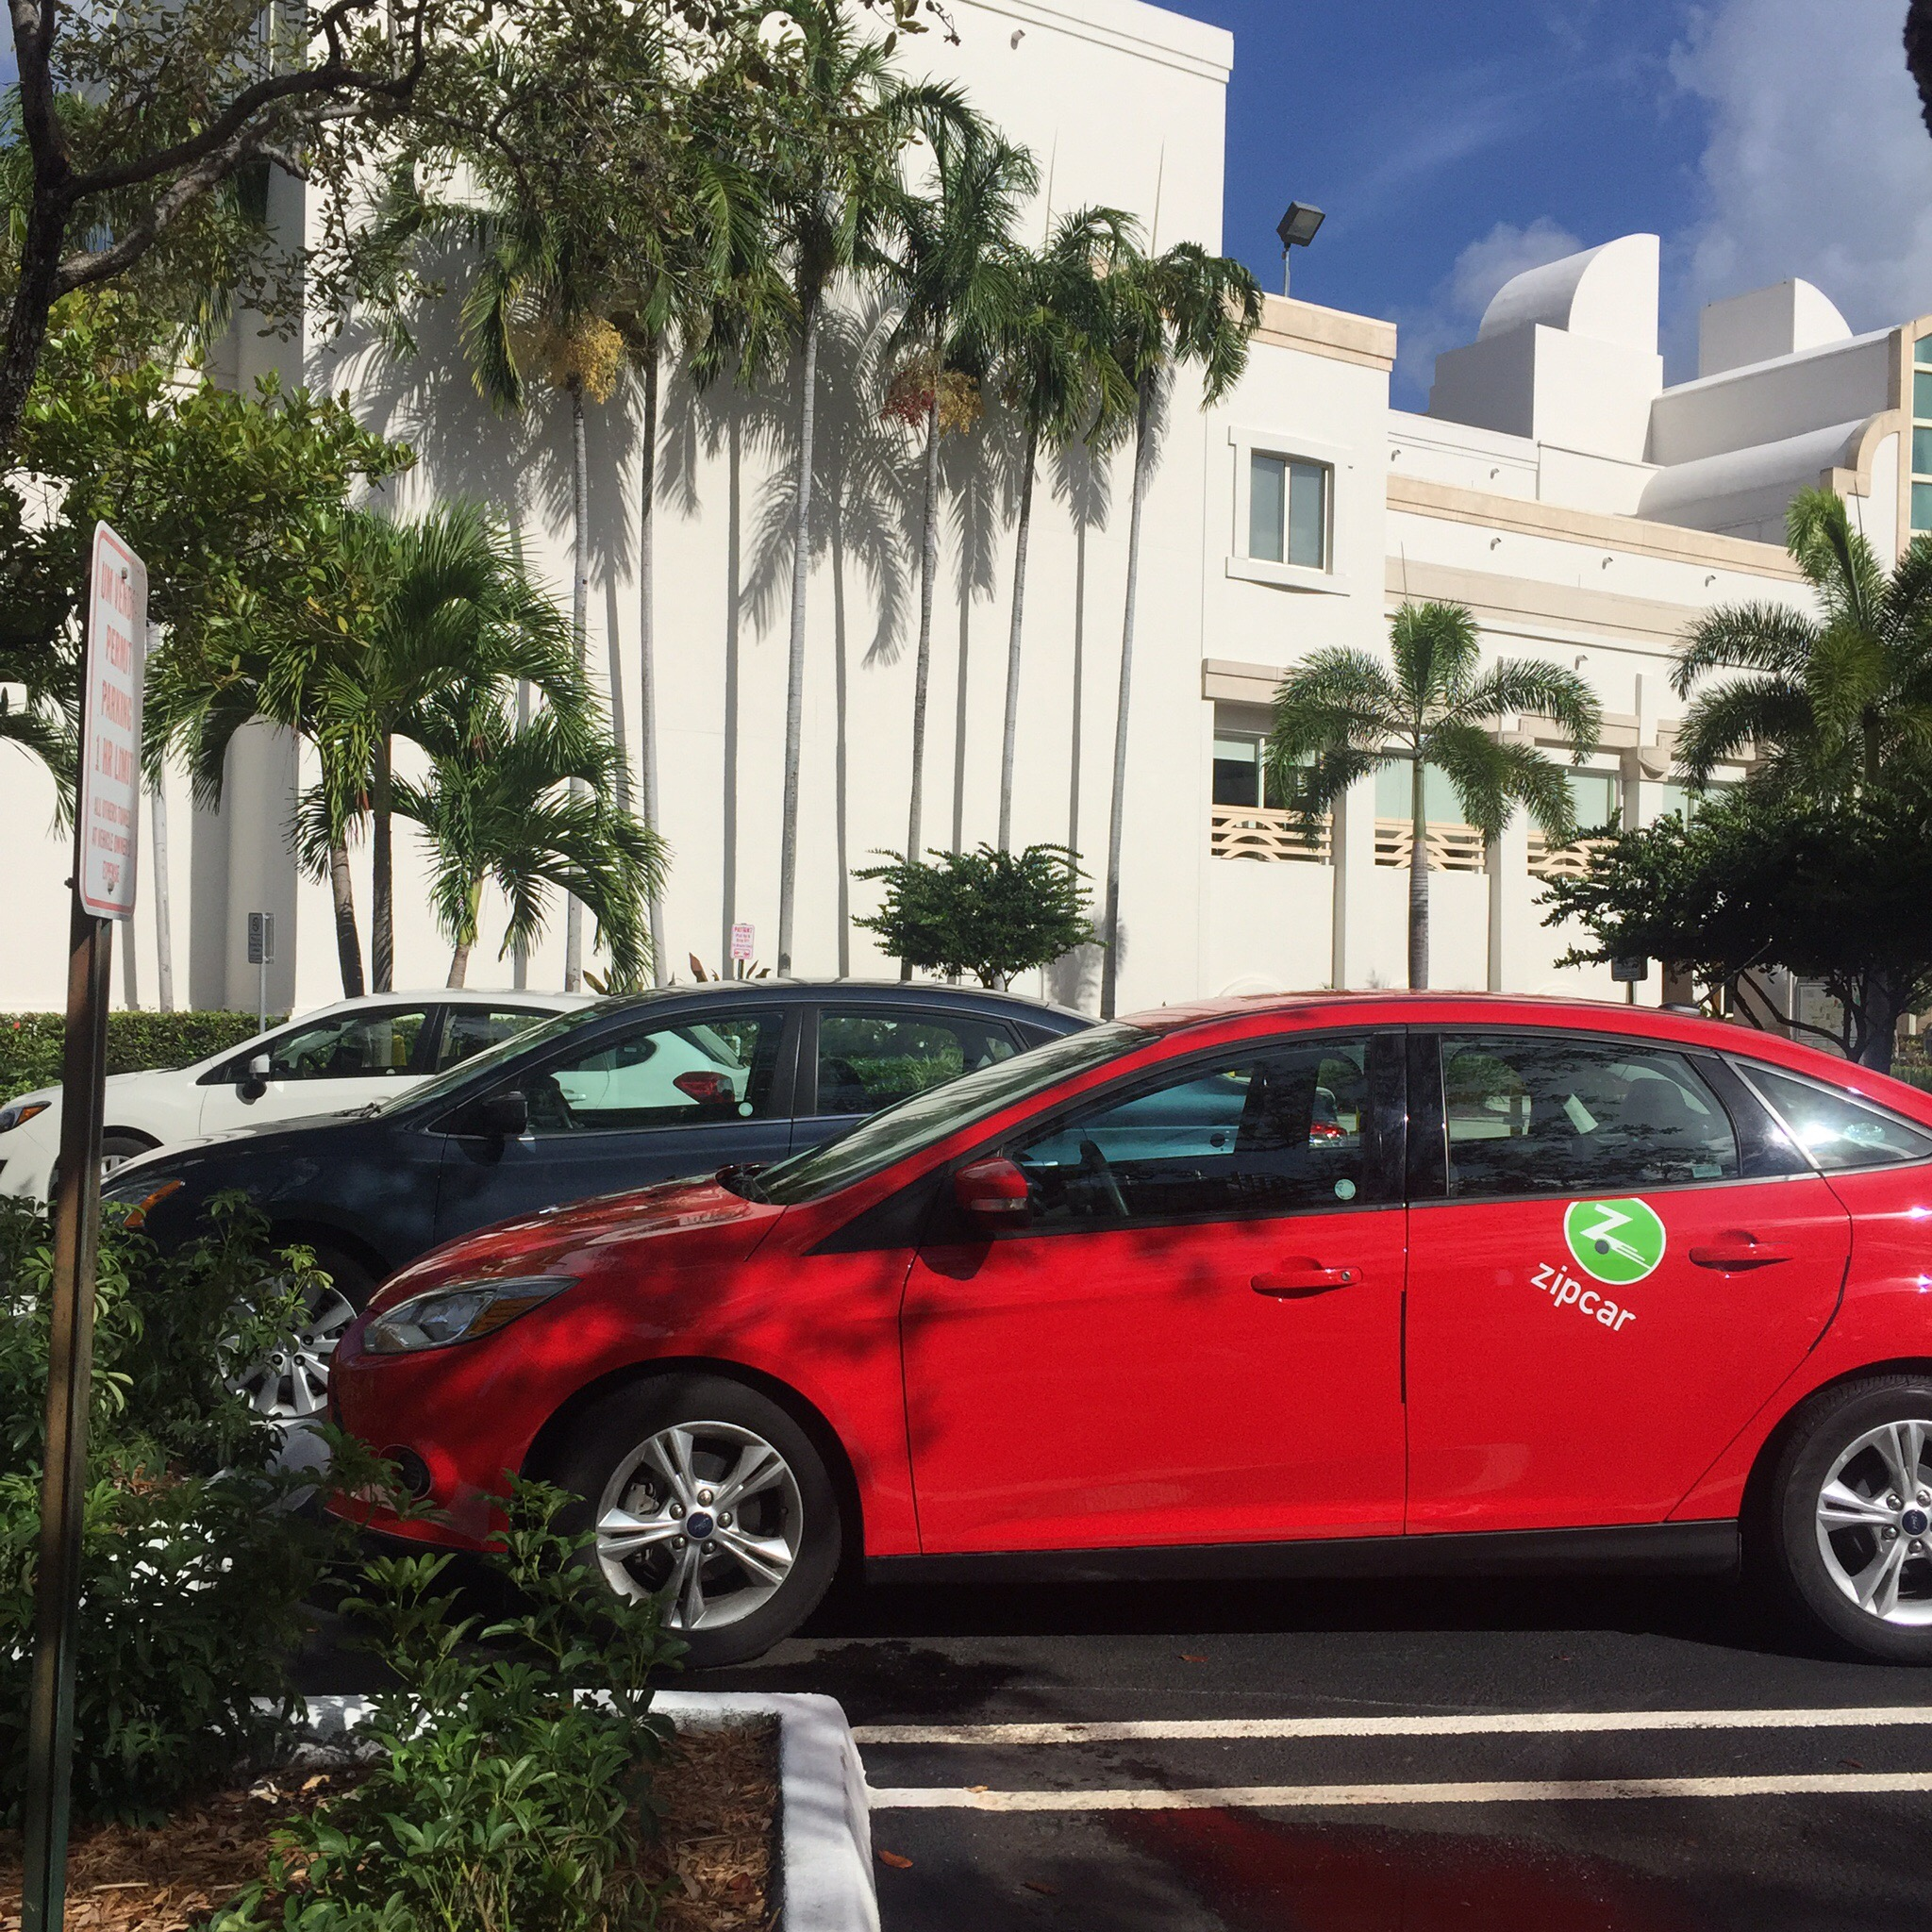 #ziptothekeys: My Roadtrip To Key West With Zipcar